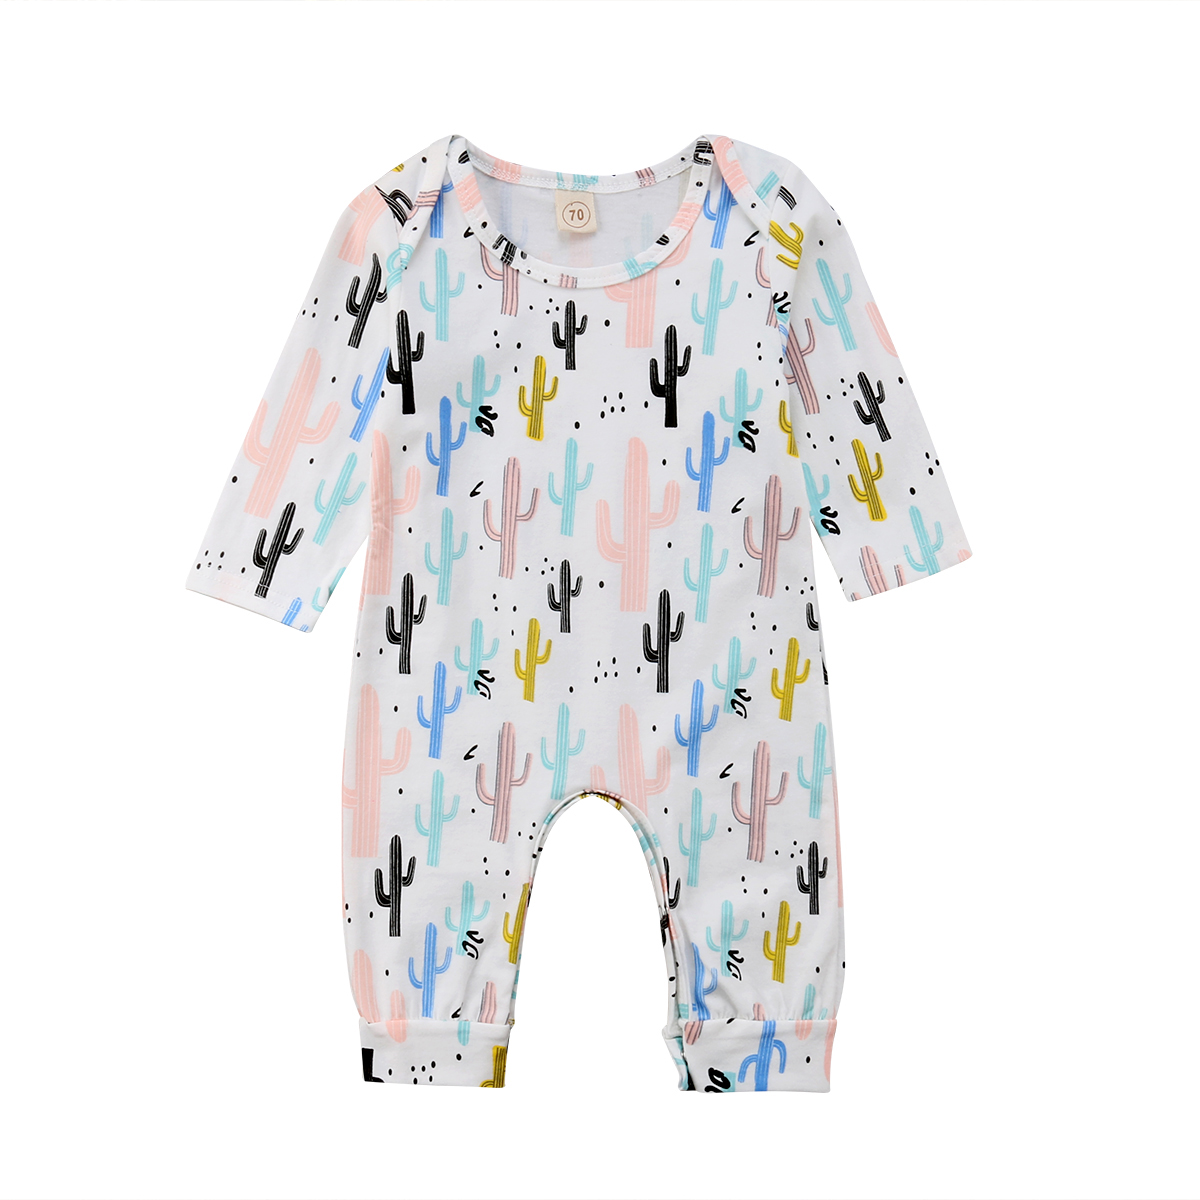 cc0bbe601678 Emmababy Infant Newborn Baby Boy Girl Long Sleeve Cactus Romper Jumpsuit  Outfits Baby Clothes 0-